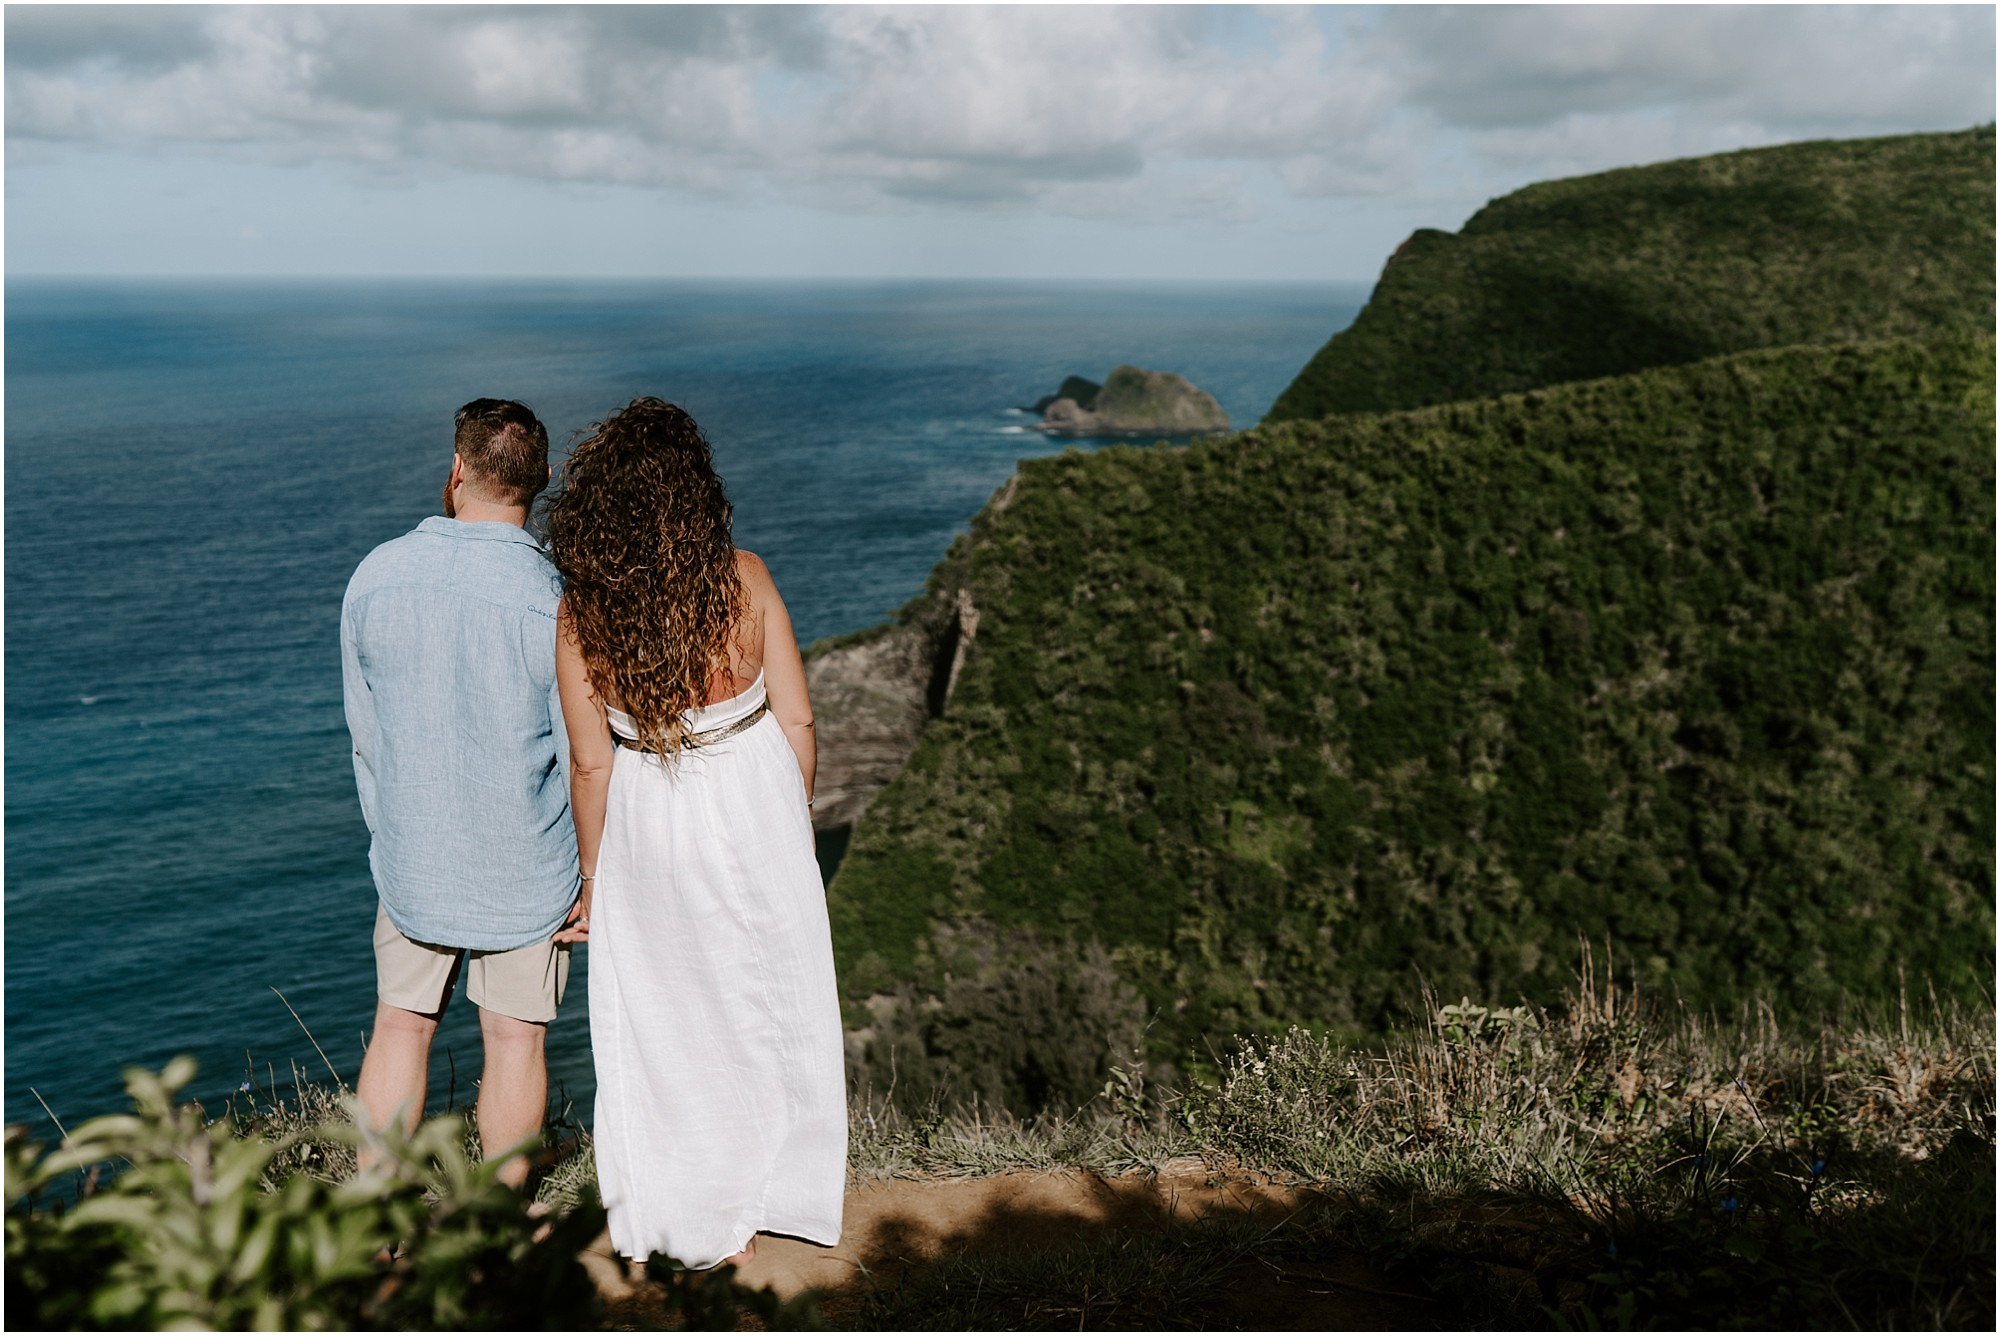 big-island-valley-proposal-hawaii-elopement-photographer_0005.jpg